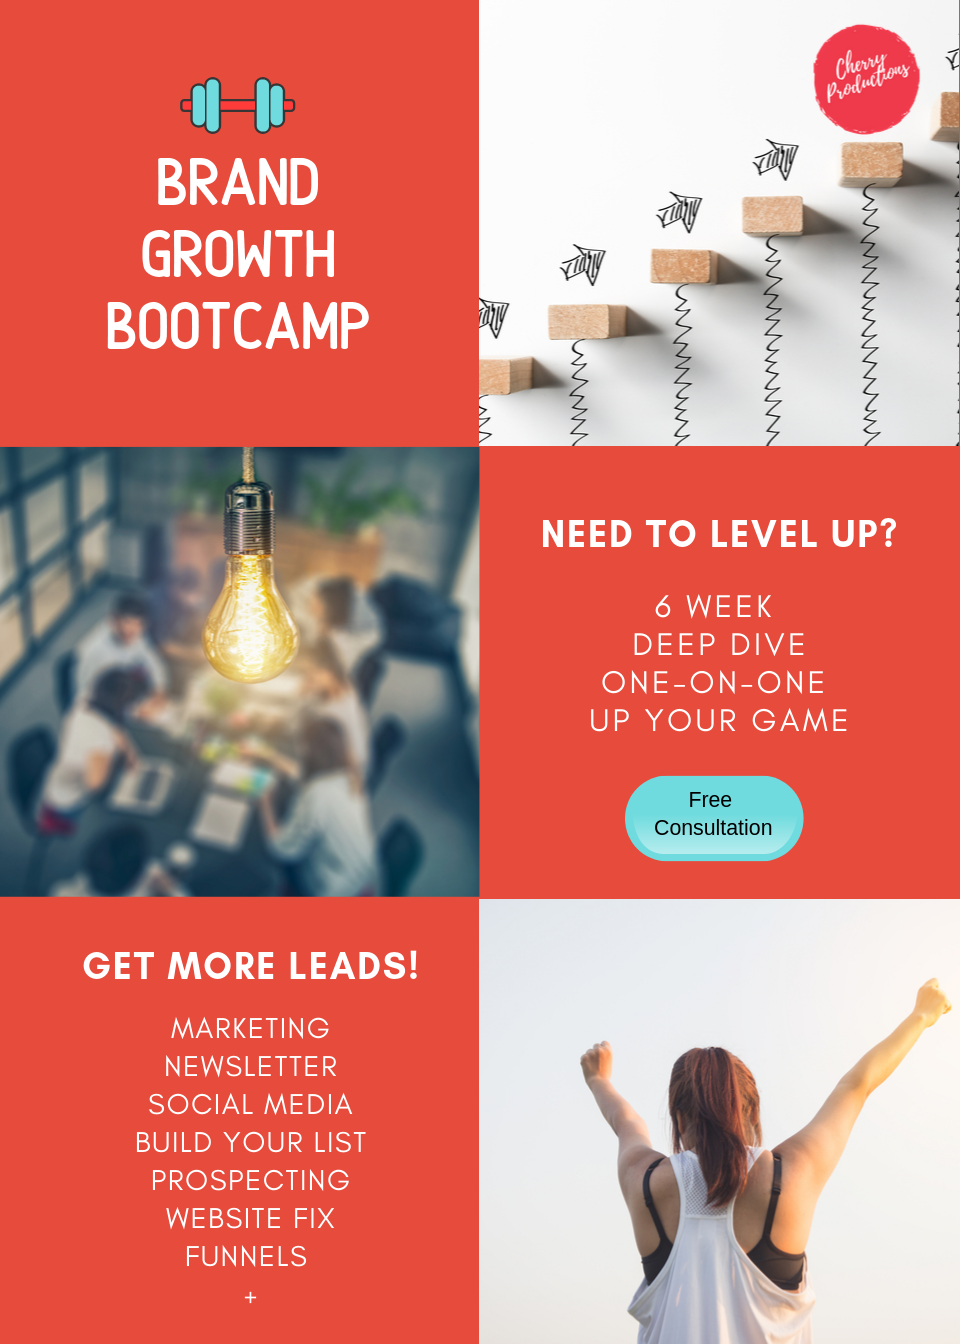 Brand_Growth_Bootcamp_image_.png